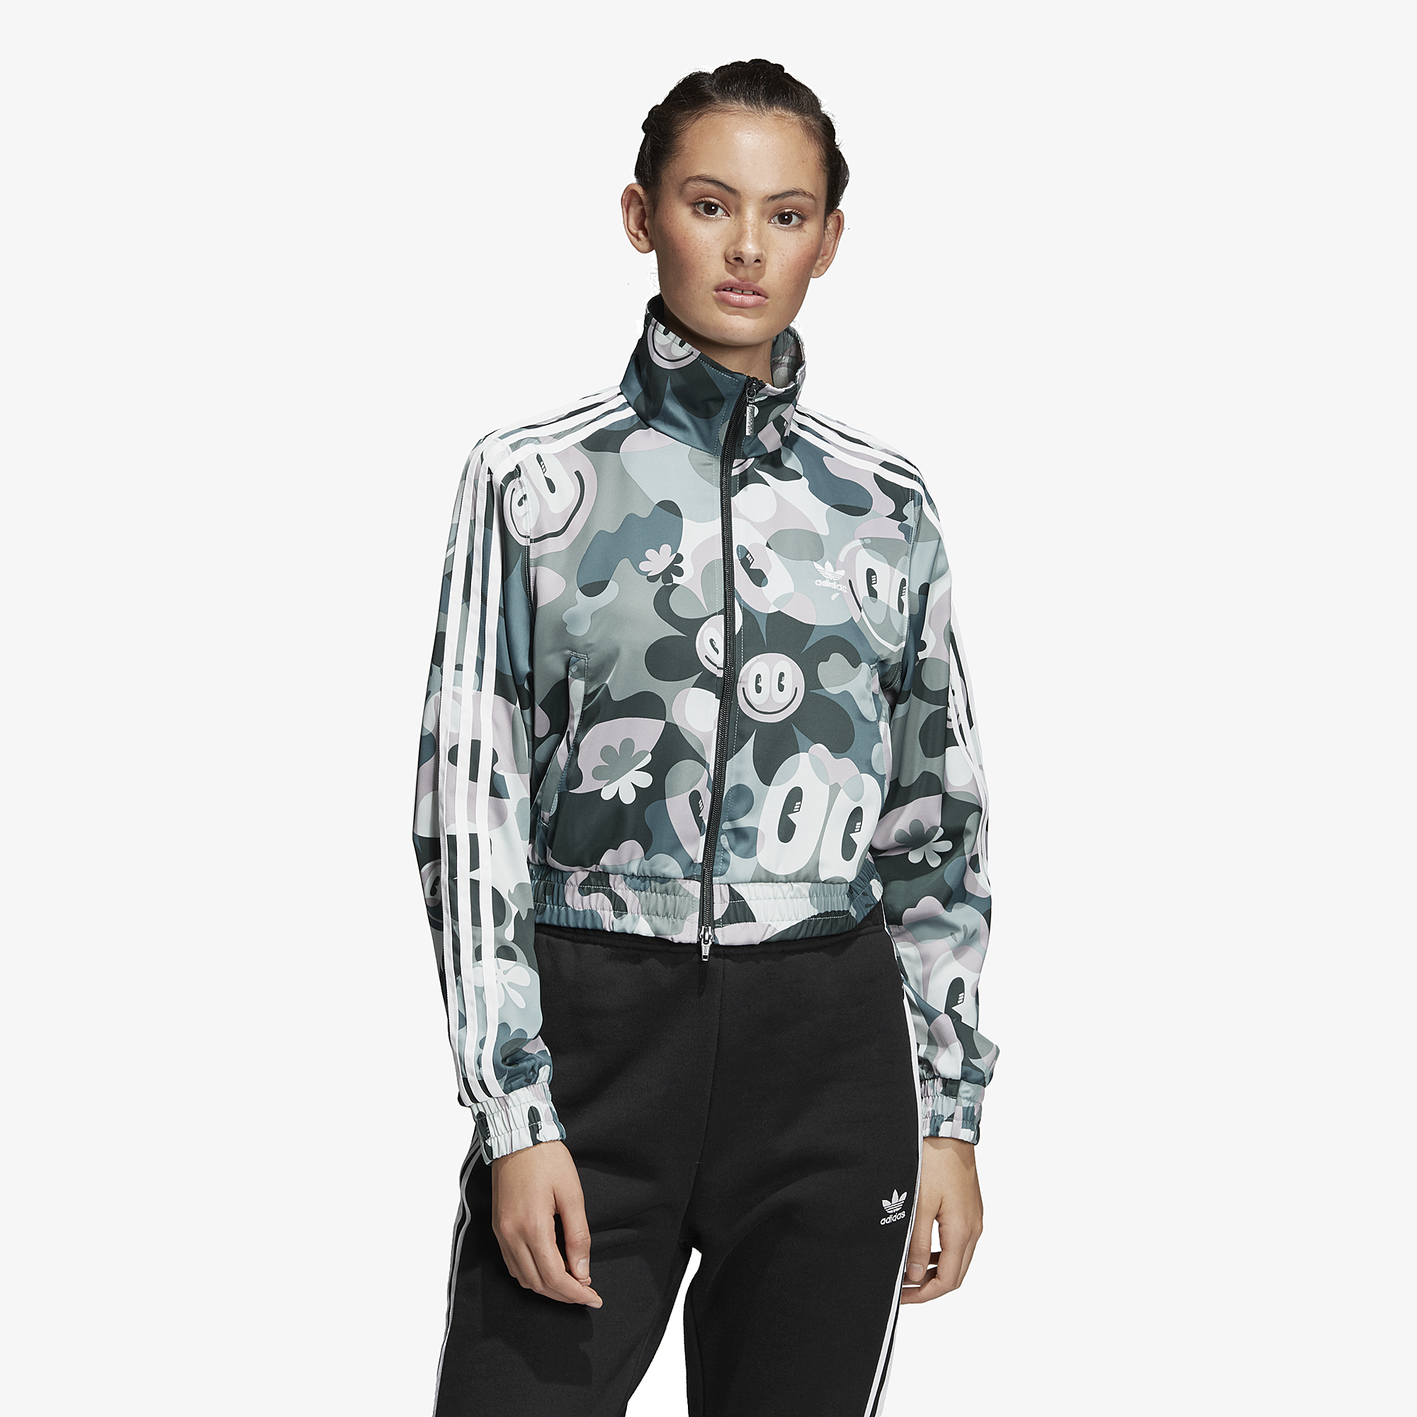 0b1f7fd5a6e1d adidas Originals Gallery Track Top - Women s - Casual - Clothing - Multi